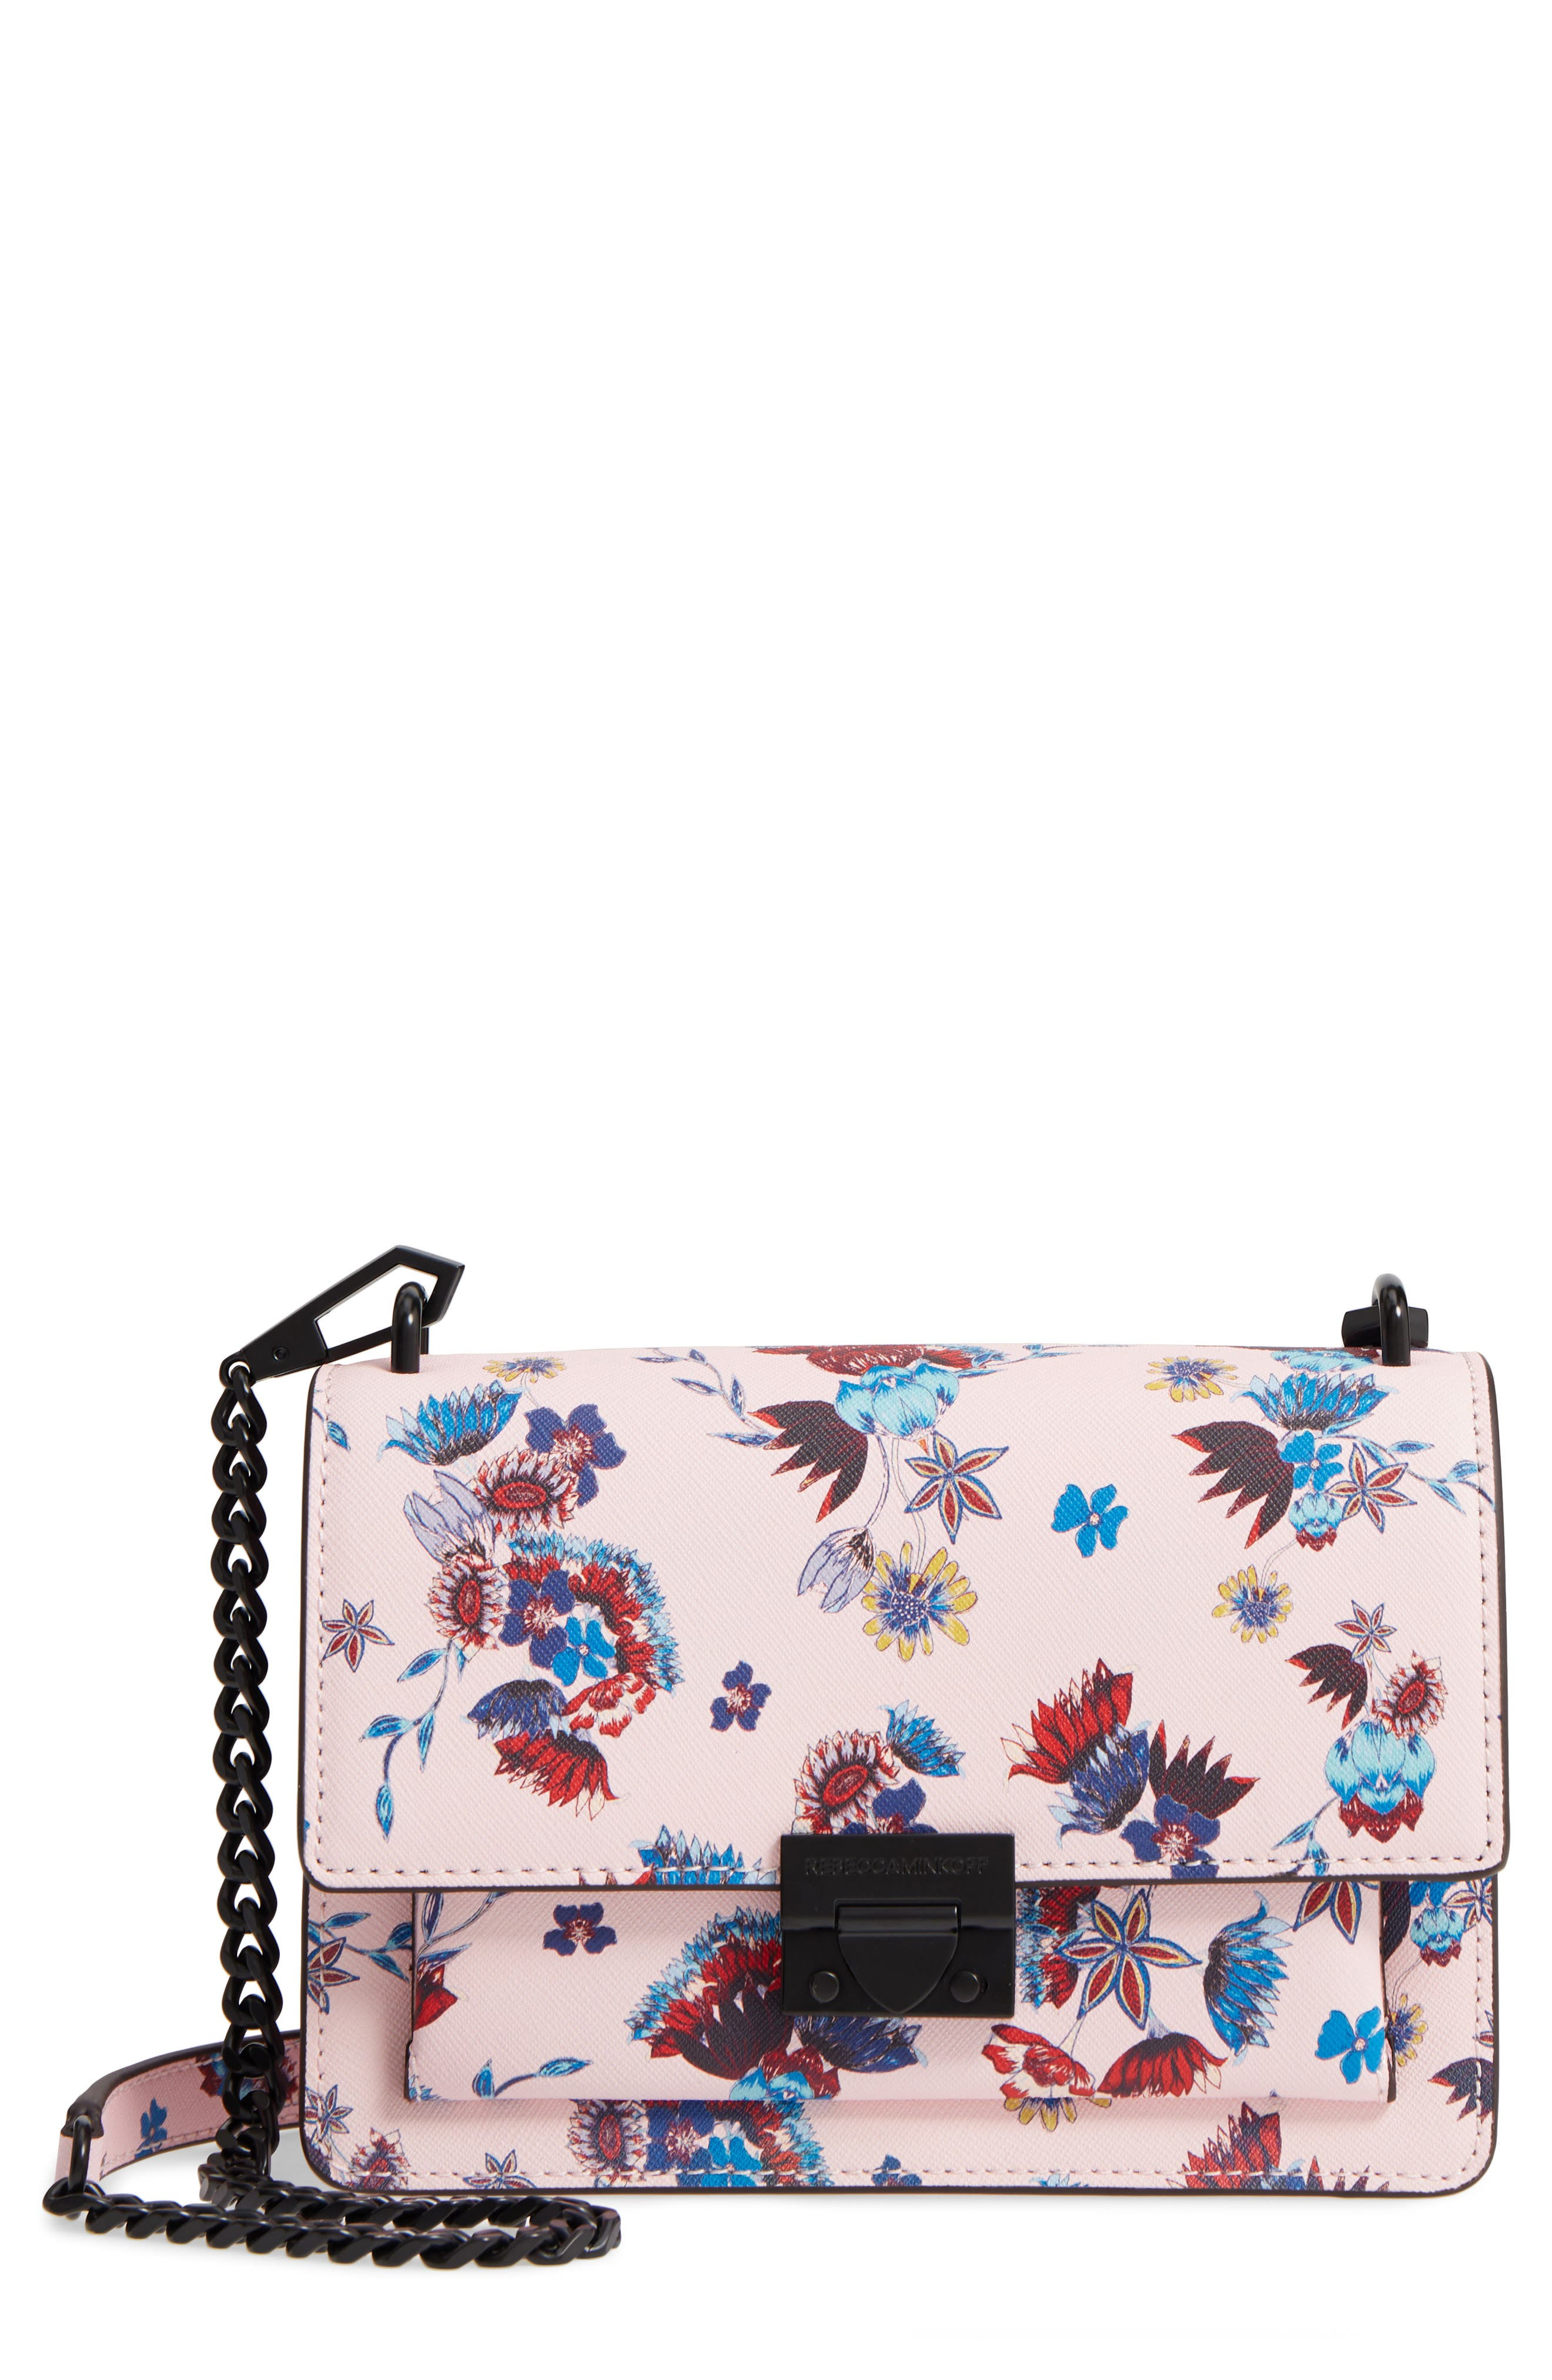 Small Christy Print Leather Shoulder Bag,                             Main thumbnail 1, color,                             Floral Pink